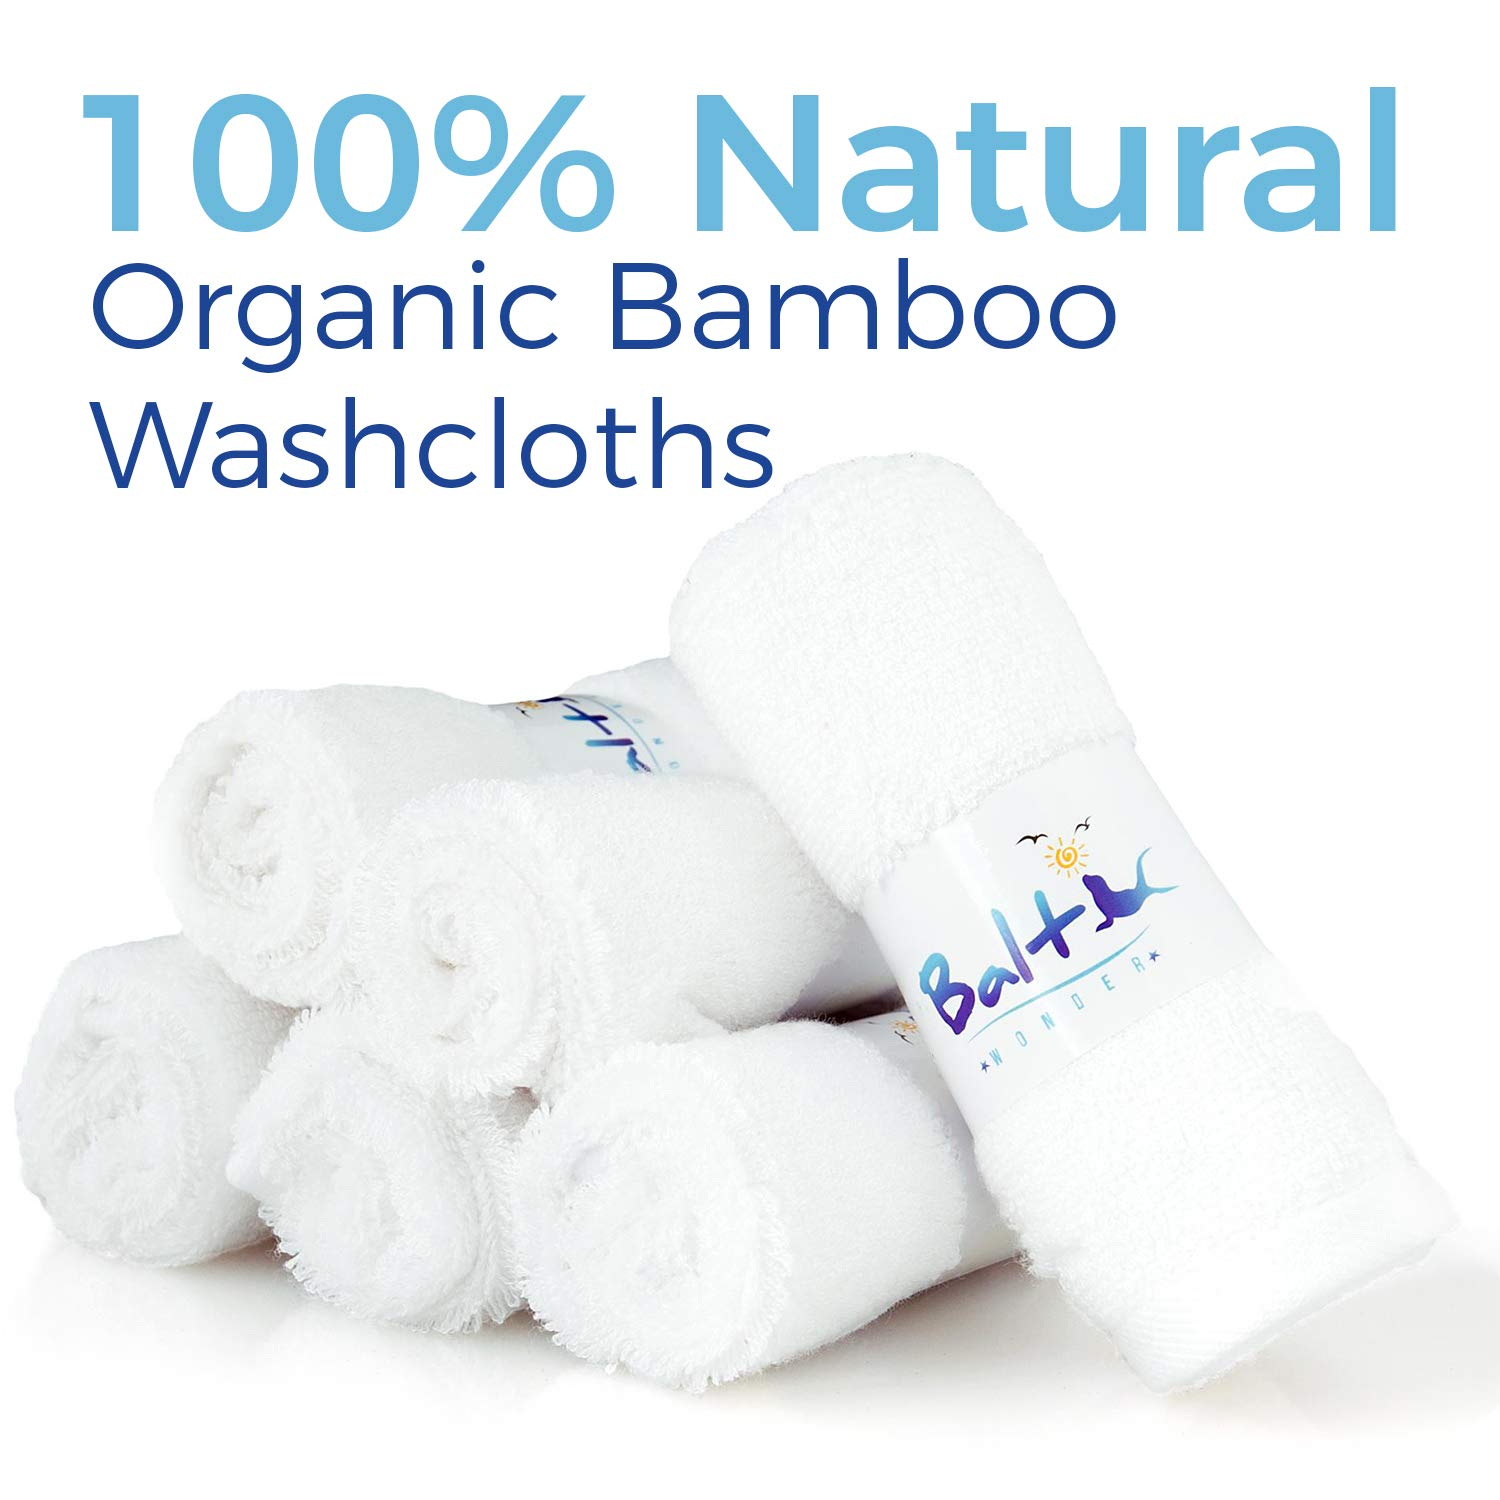 Baby Washcloths – Hypoallergenic Organic Bamboo Towel, Ultra Soft and Absorbent, Natural Reusable Wipes Perfect for Sensitive Skin and Newborn Bath